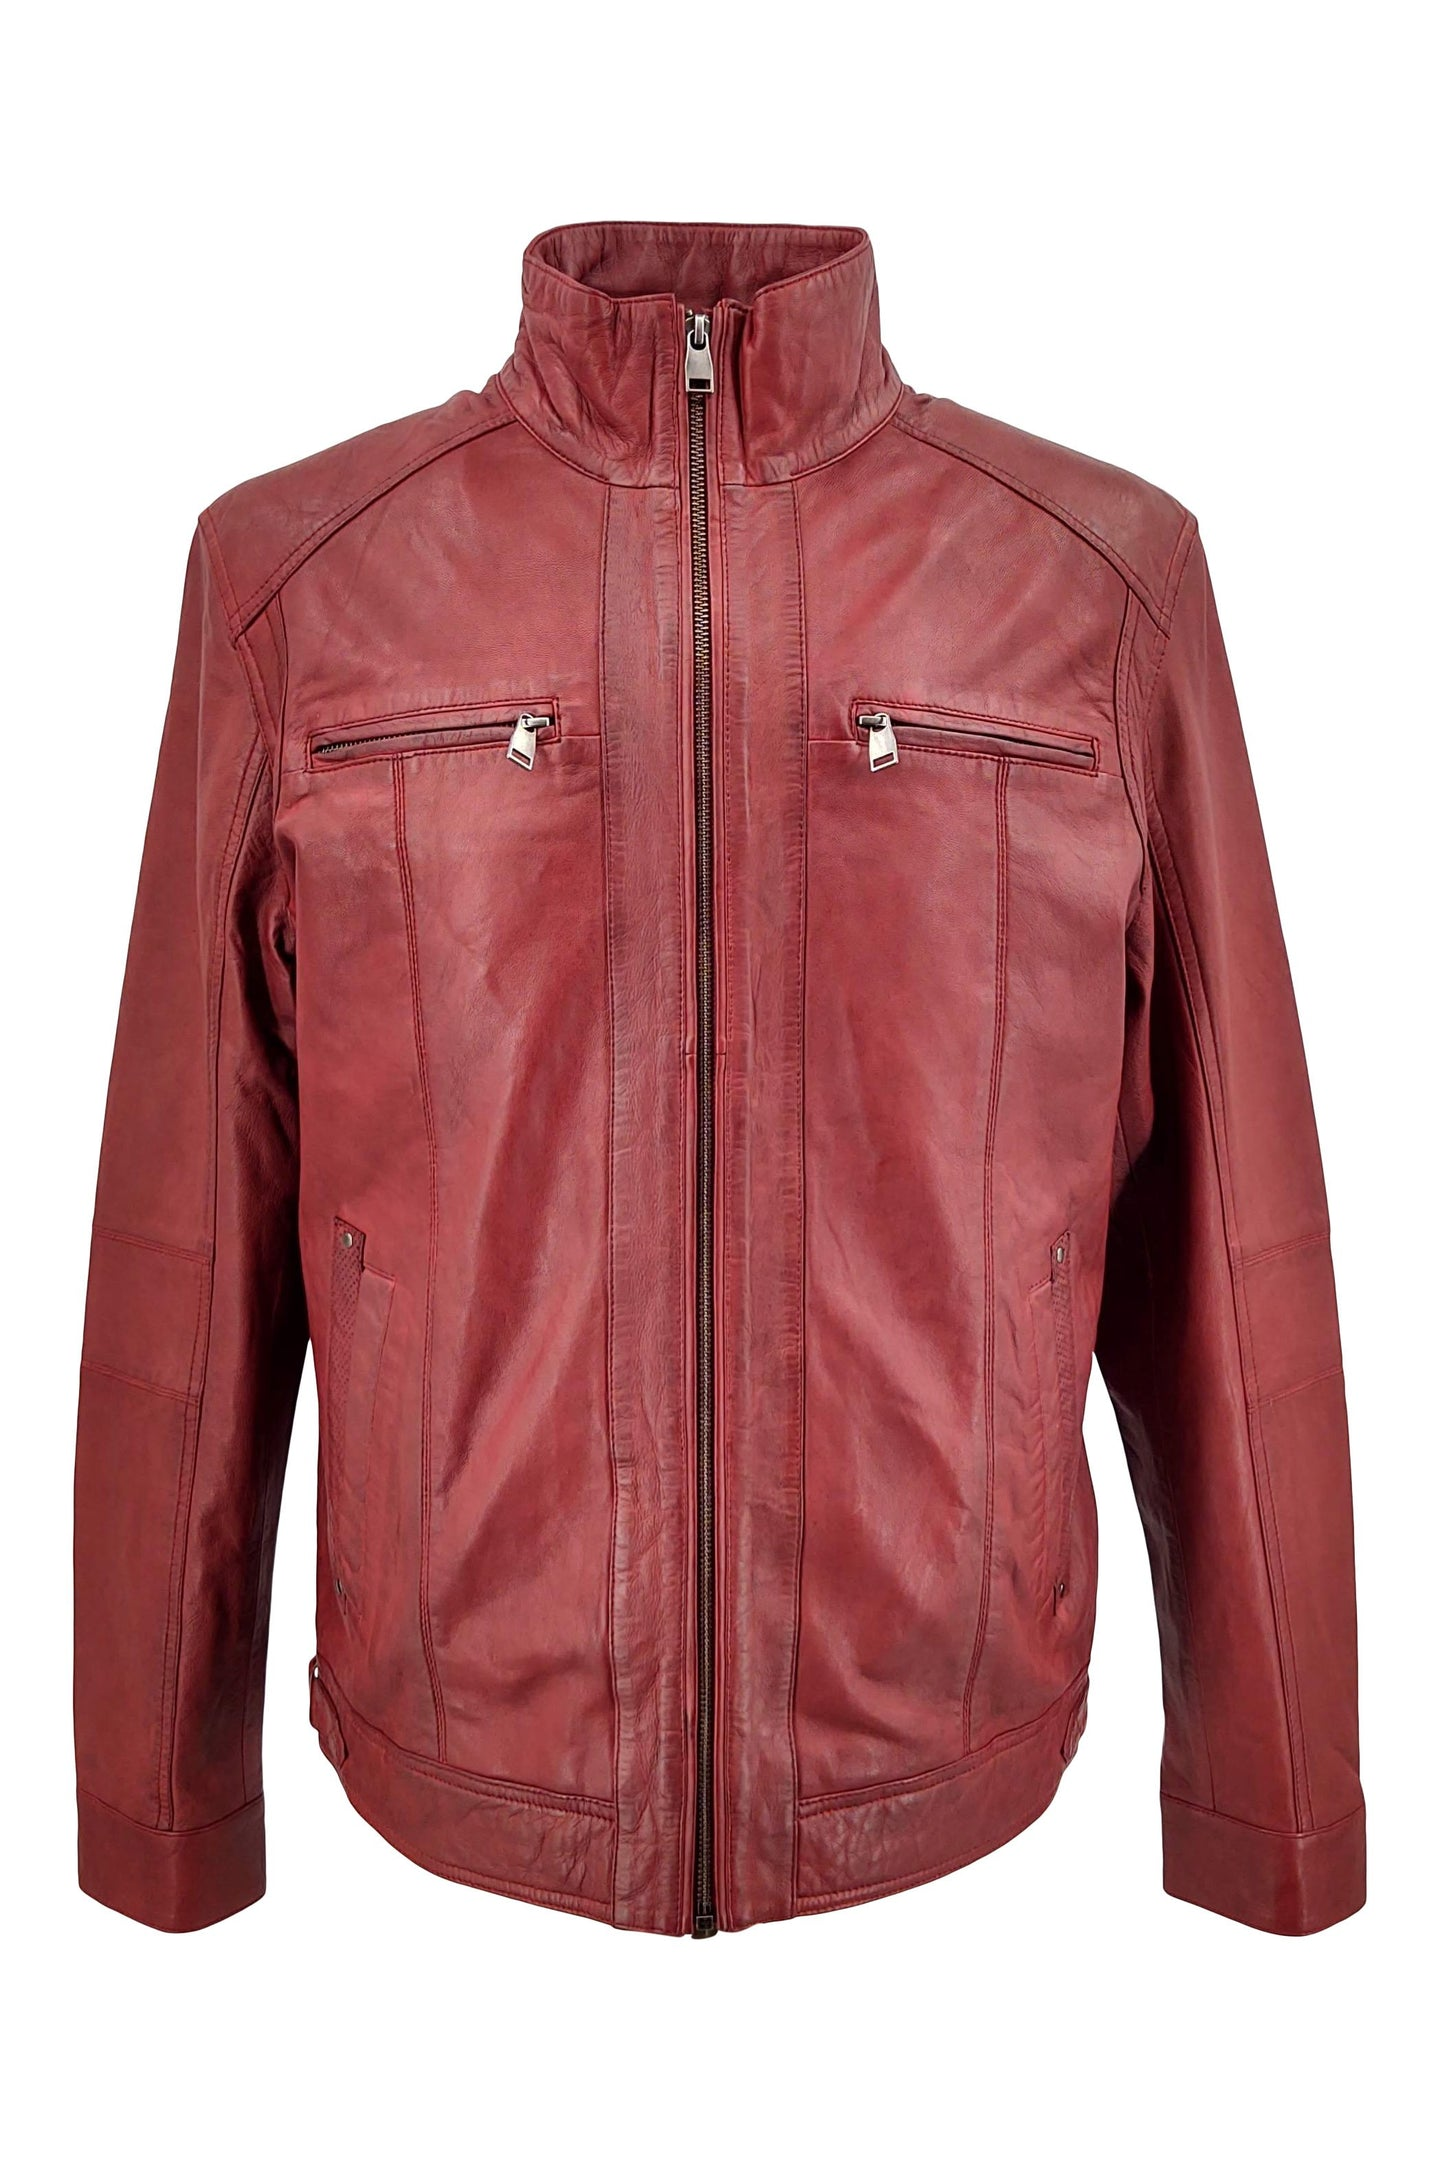 51540 - Lamb Copper Leather - Man - Red | STAMPE PELS